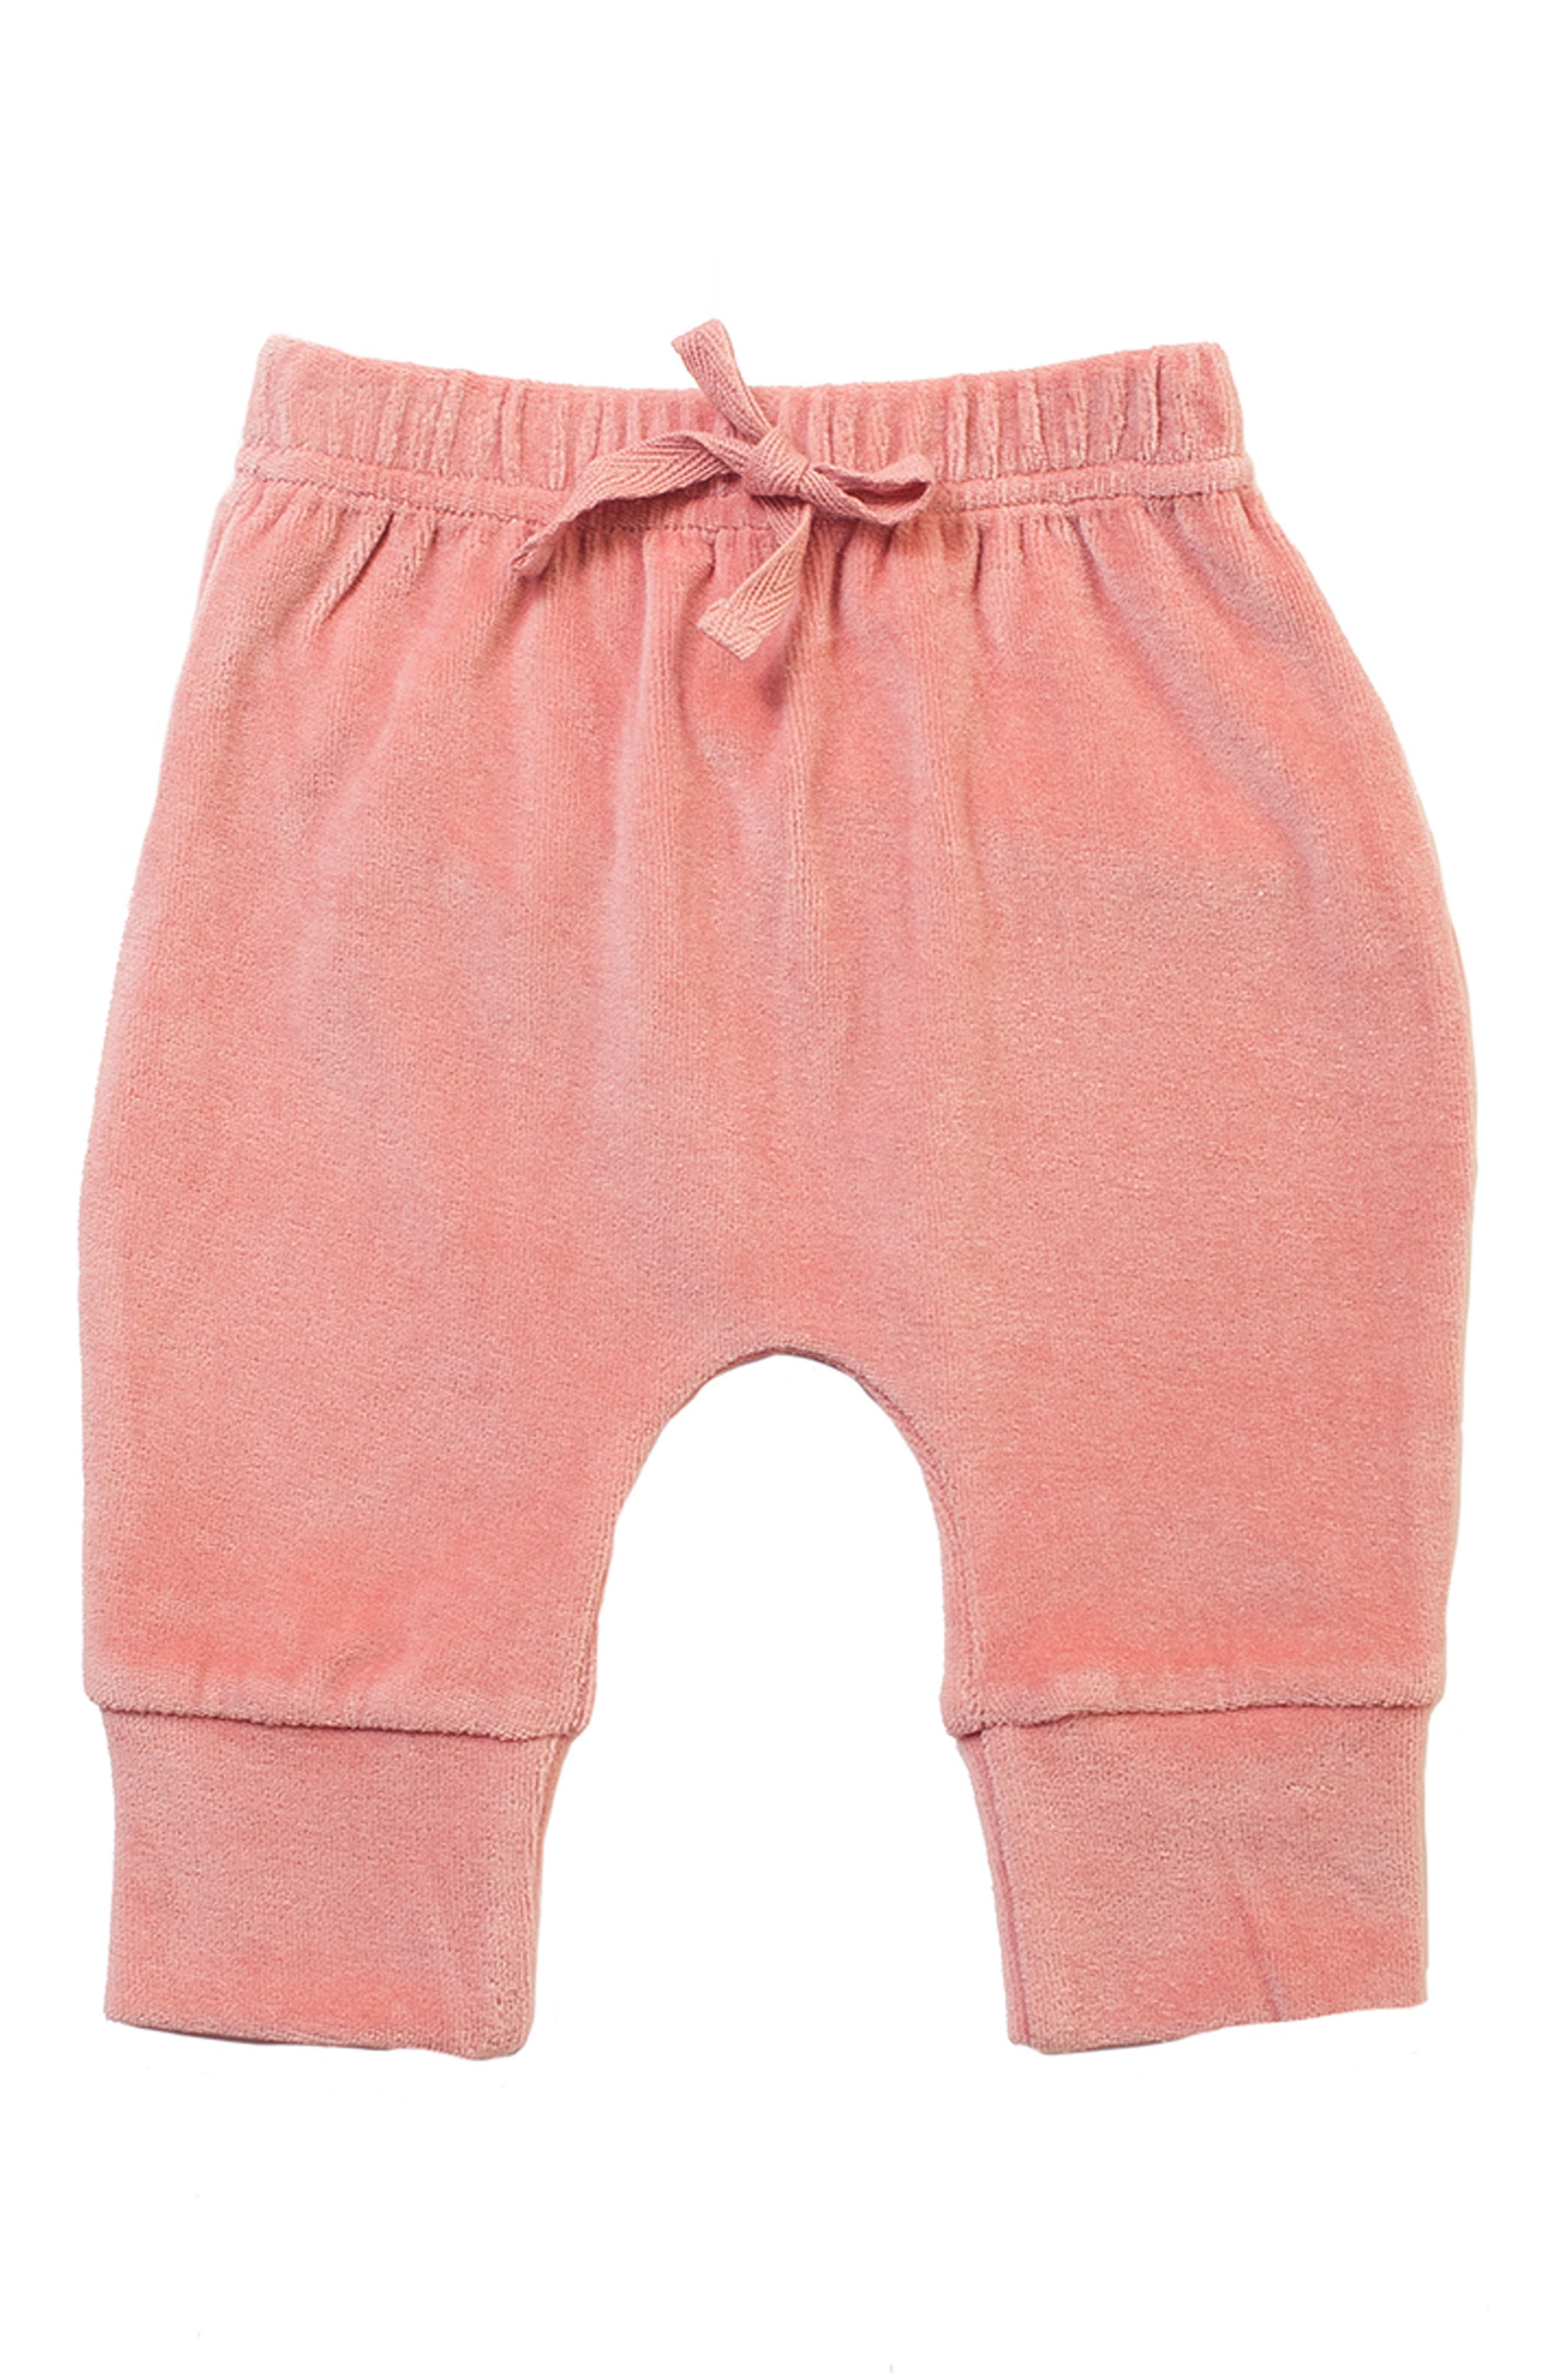 Alternate Image 1 Selected - Monica + Andy Organic Cotton Velour Sweatpants (Baby Girls)